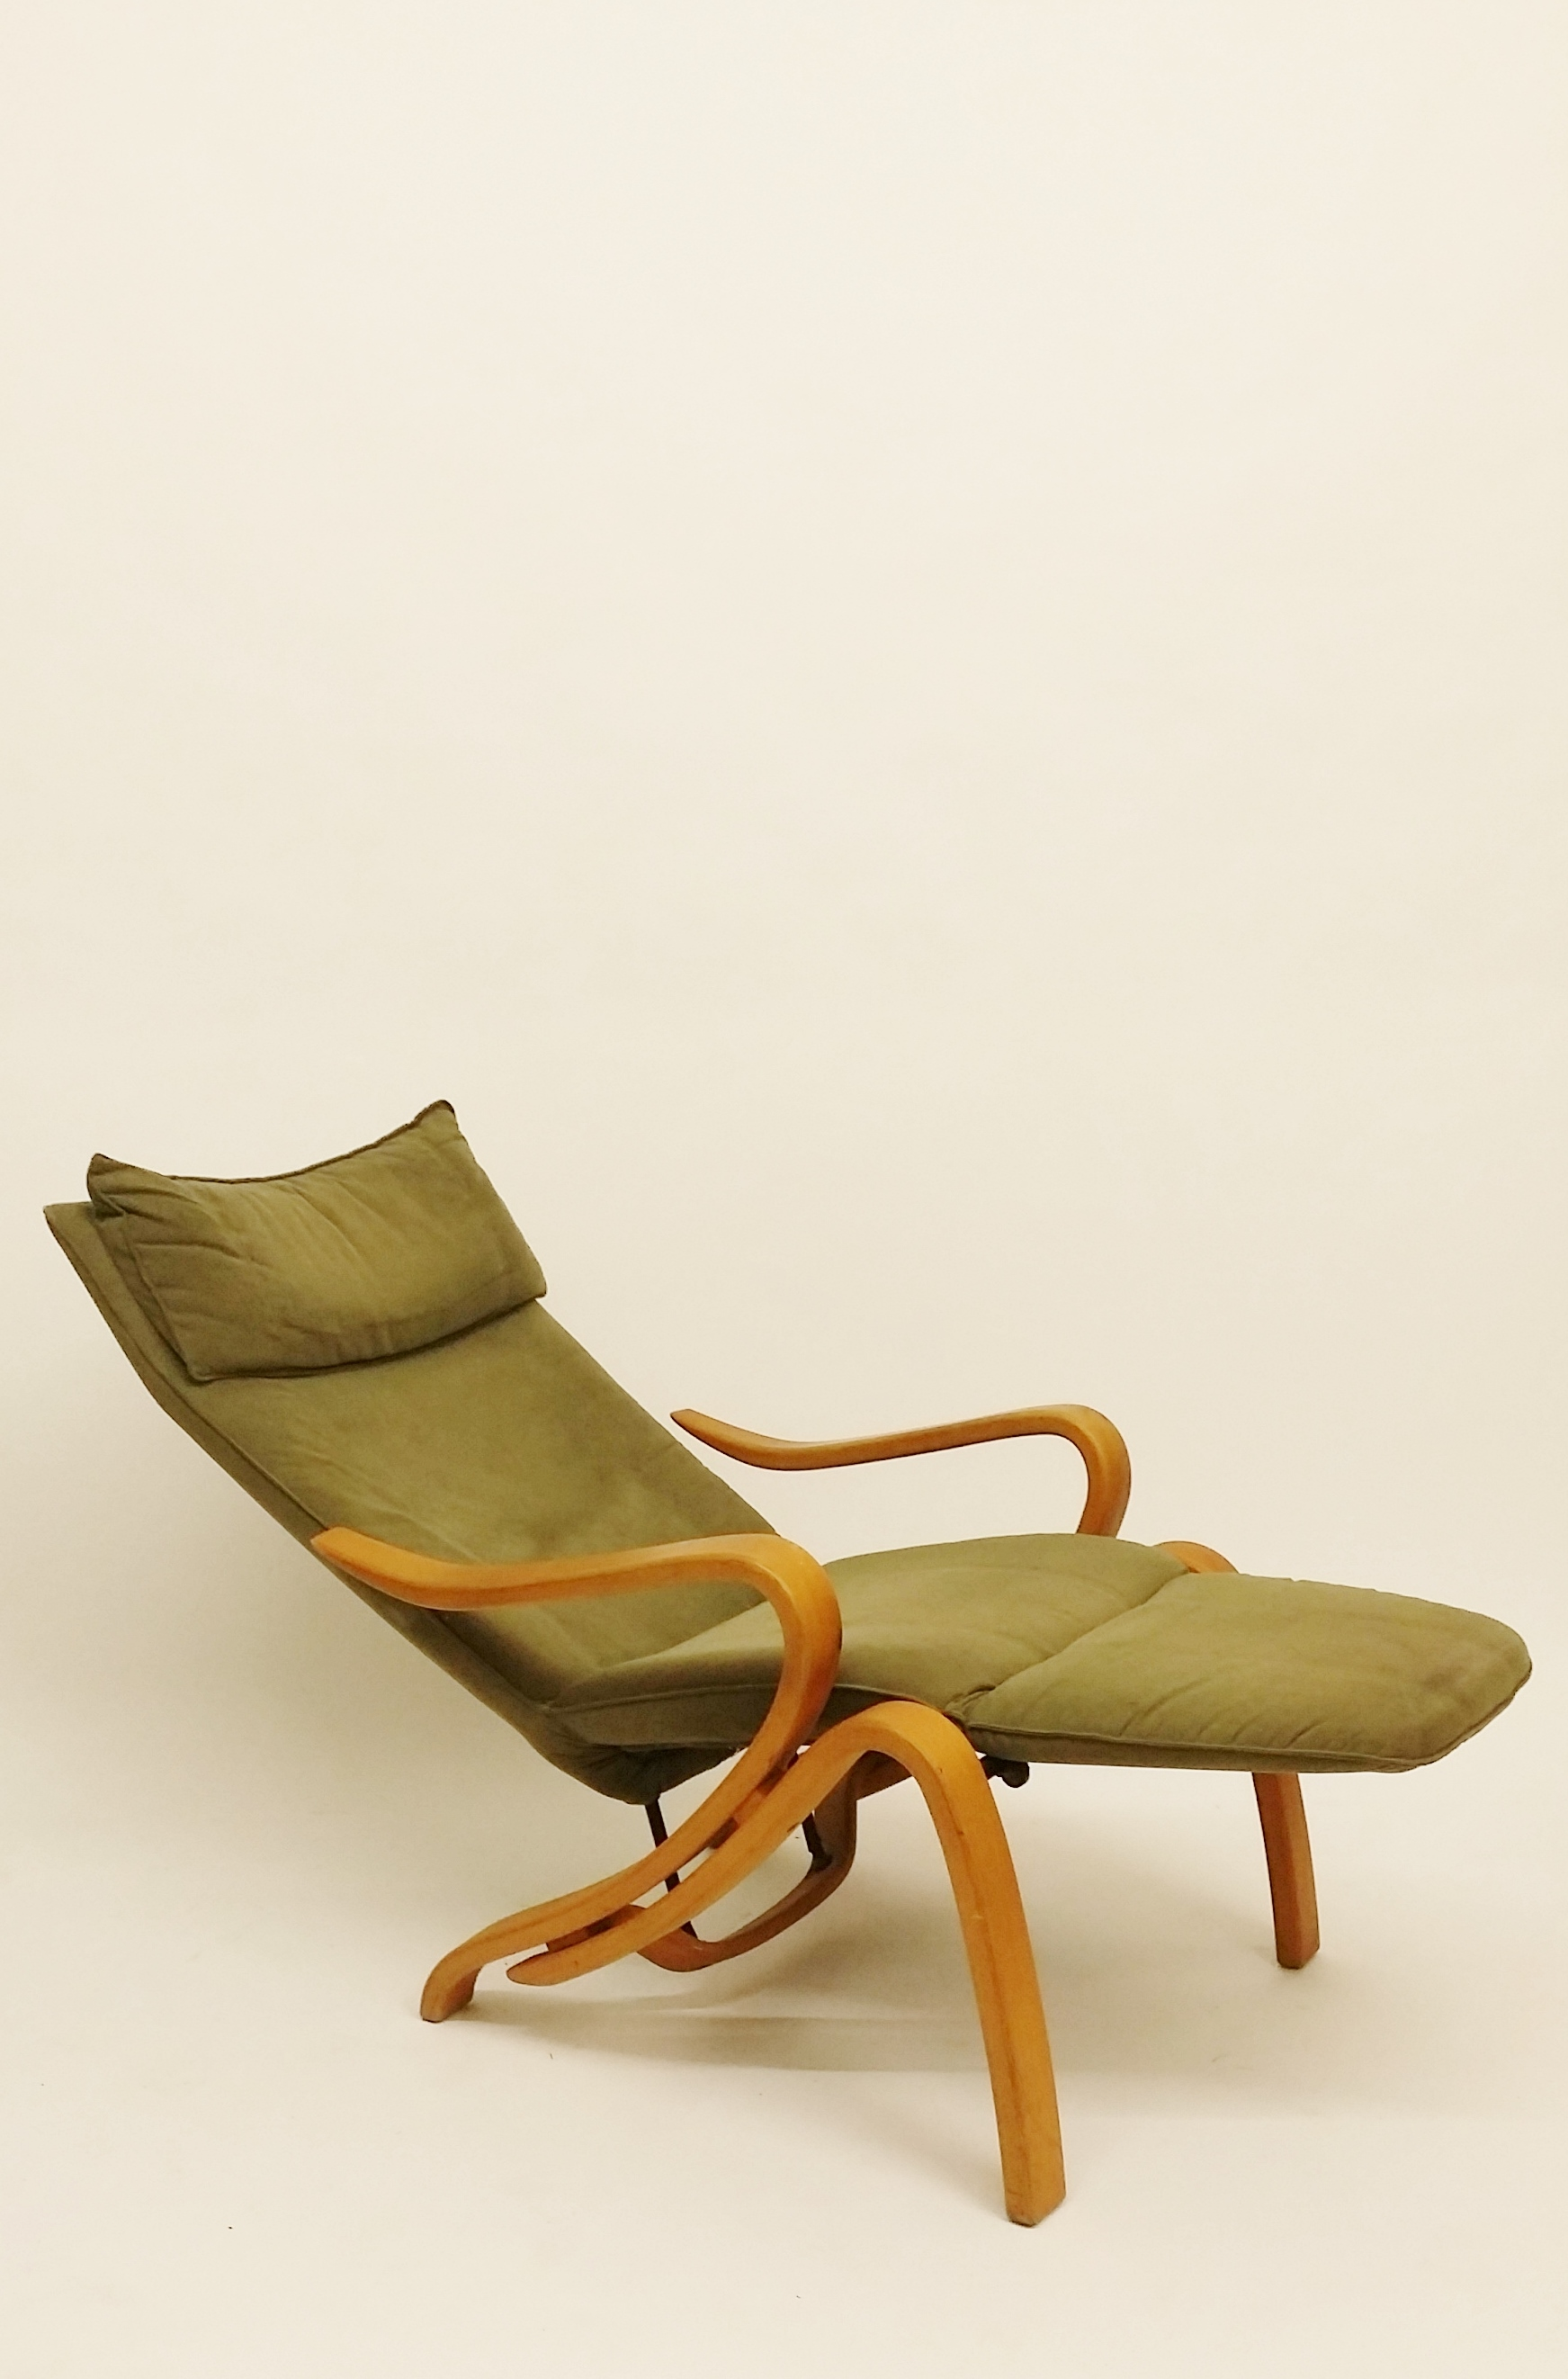 Adustable lounge chair